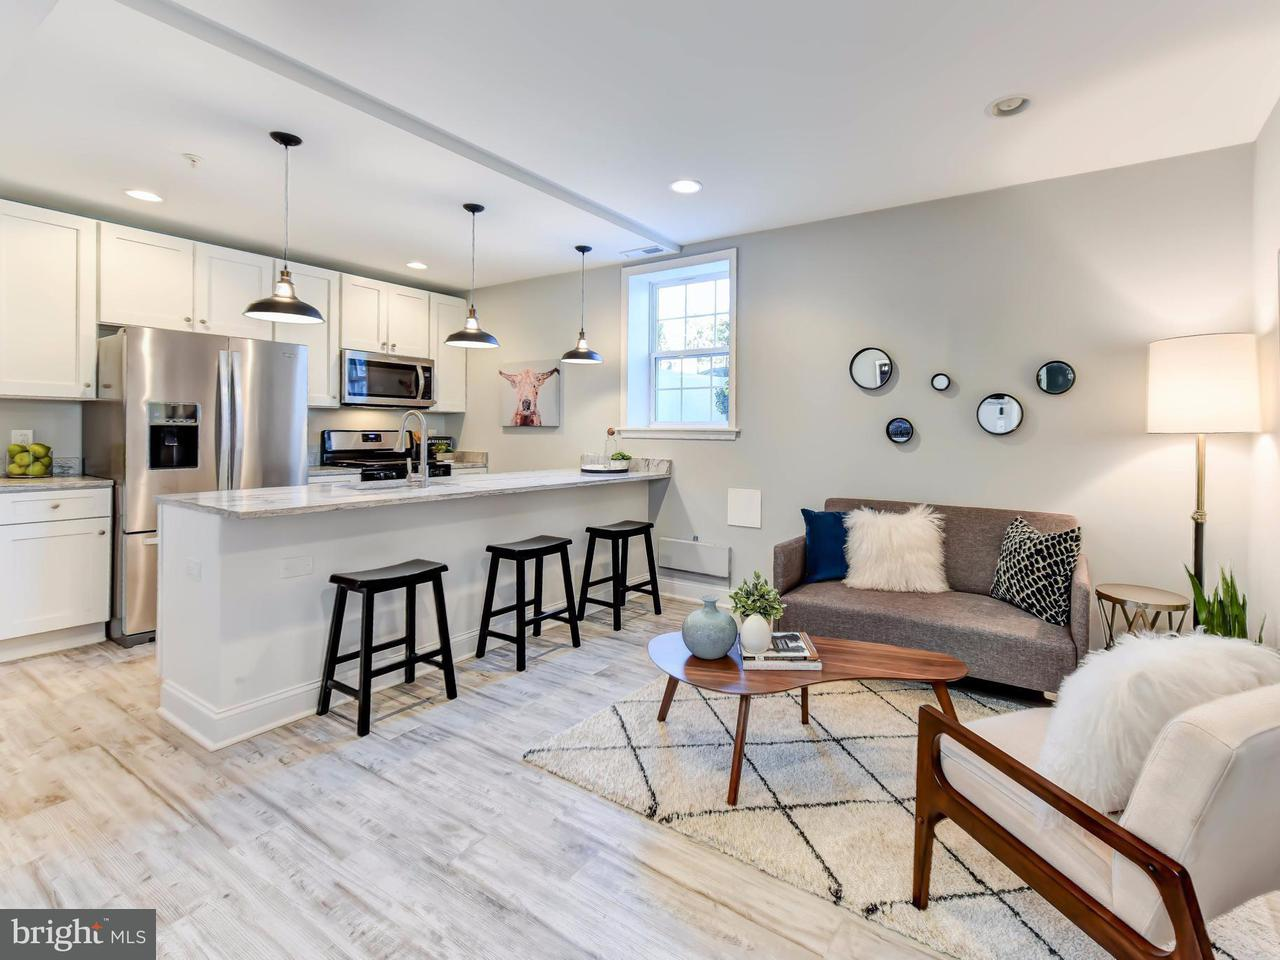 Condominium for Sale at 22 Gallatin St NE #b Washington, District Of Columbia 20011 United States